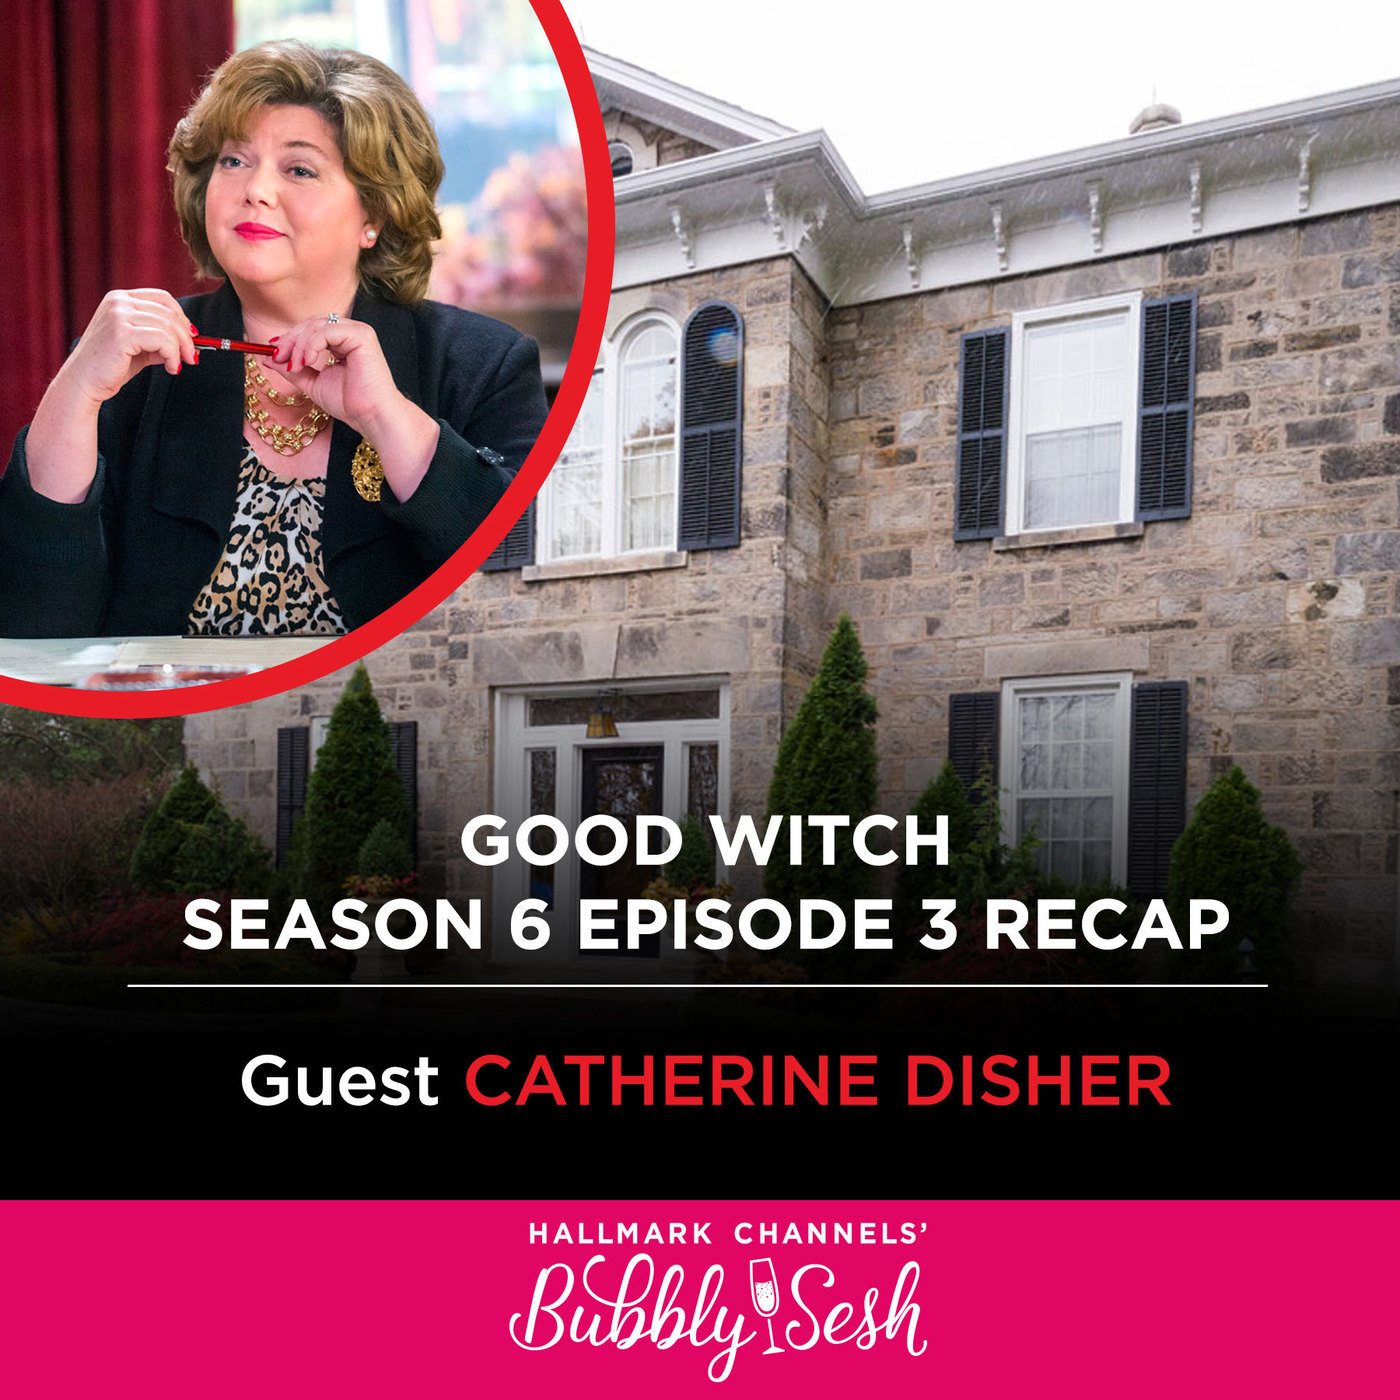 Good Witch Season 6 Episode 3 Recap with Guest Catherine Disher